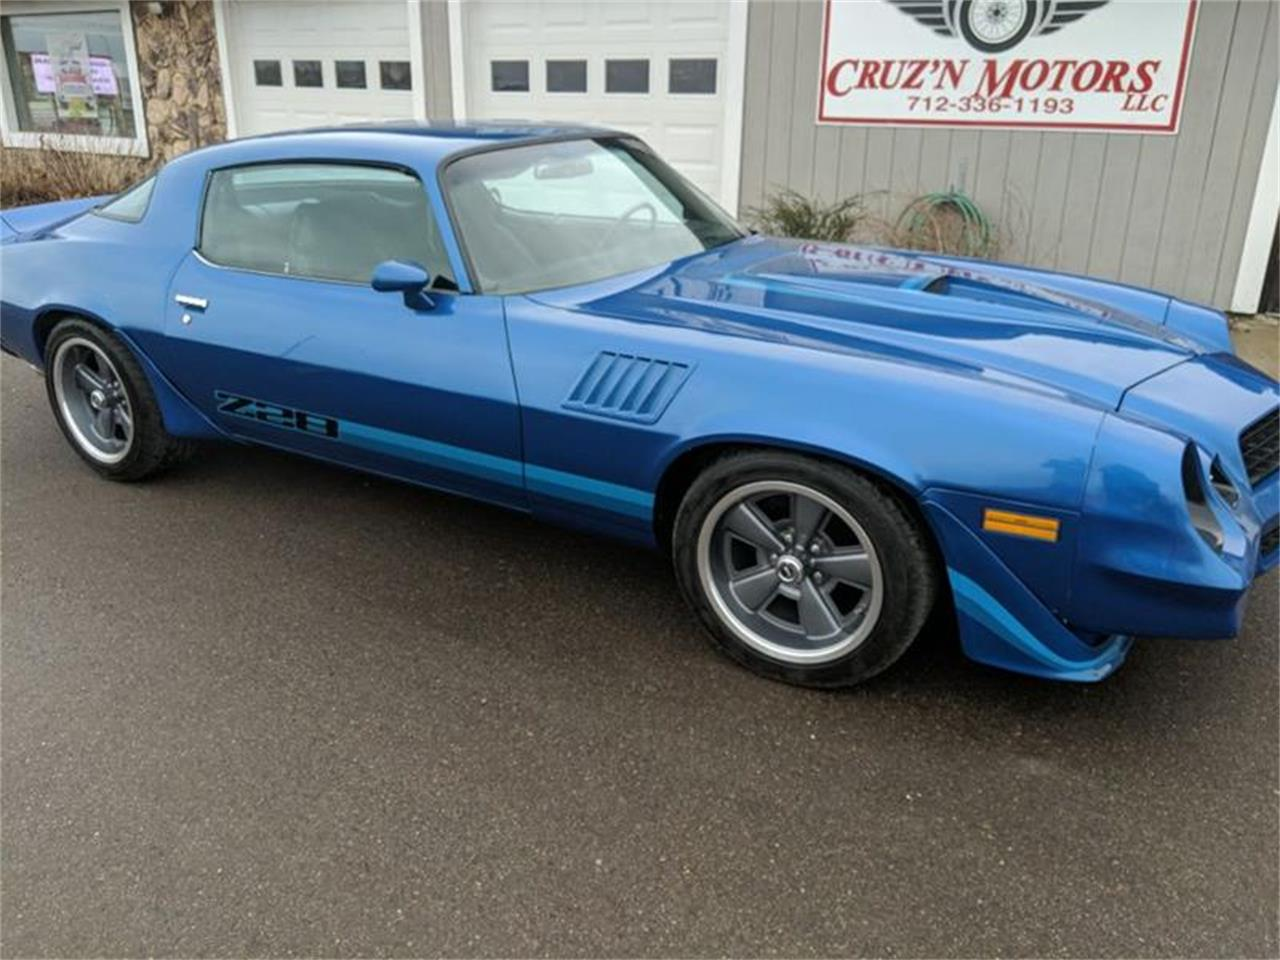 Large Picture of 1978 Chevrolet Camaro located in Spirit Lake Iowa Offered by Cruz'n Motors - PX97